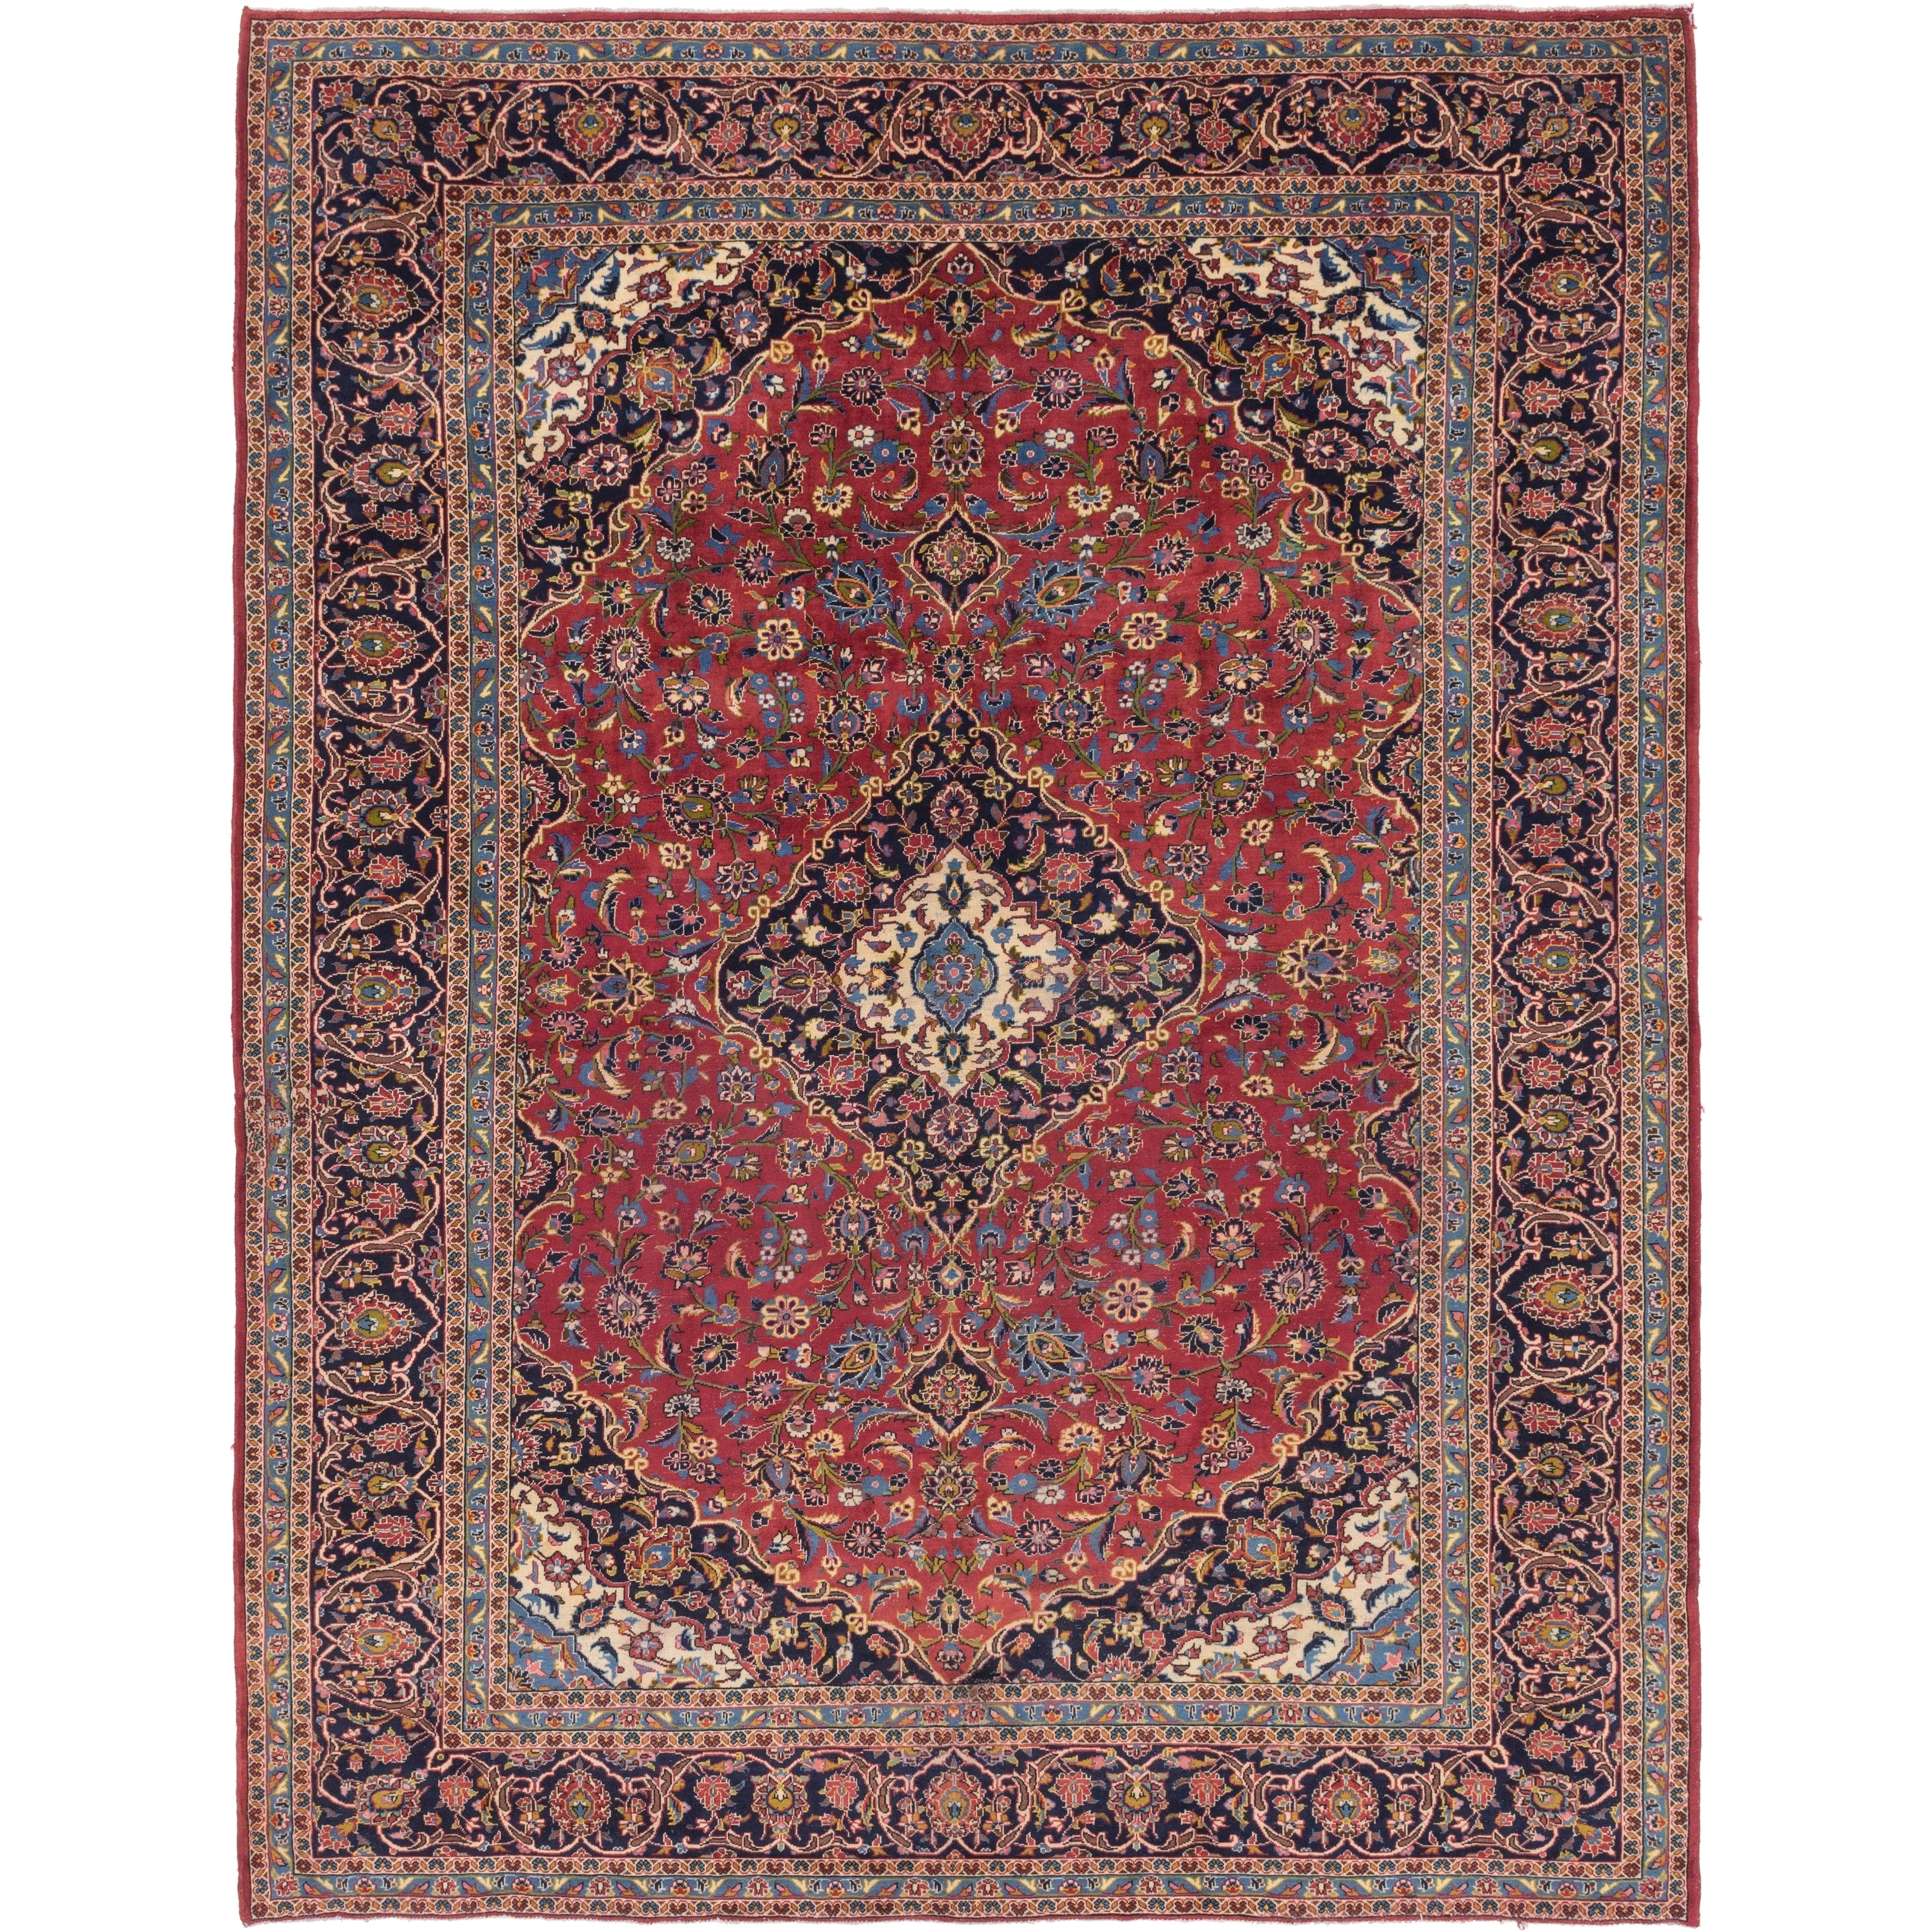 Hand Knotted Kashan Semi Antique Wool Area Rug - 9 10 x 13 6 (Red - 9 10 x 13 6)